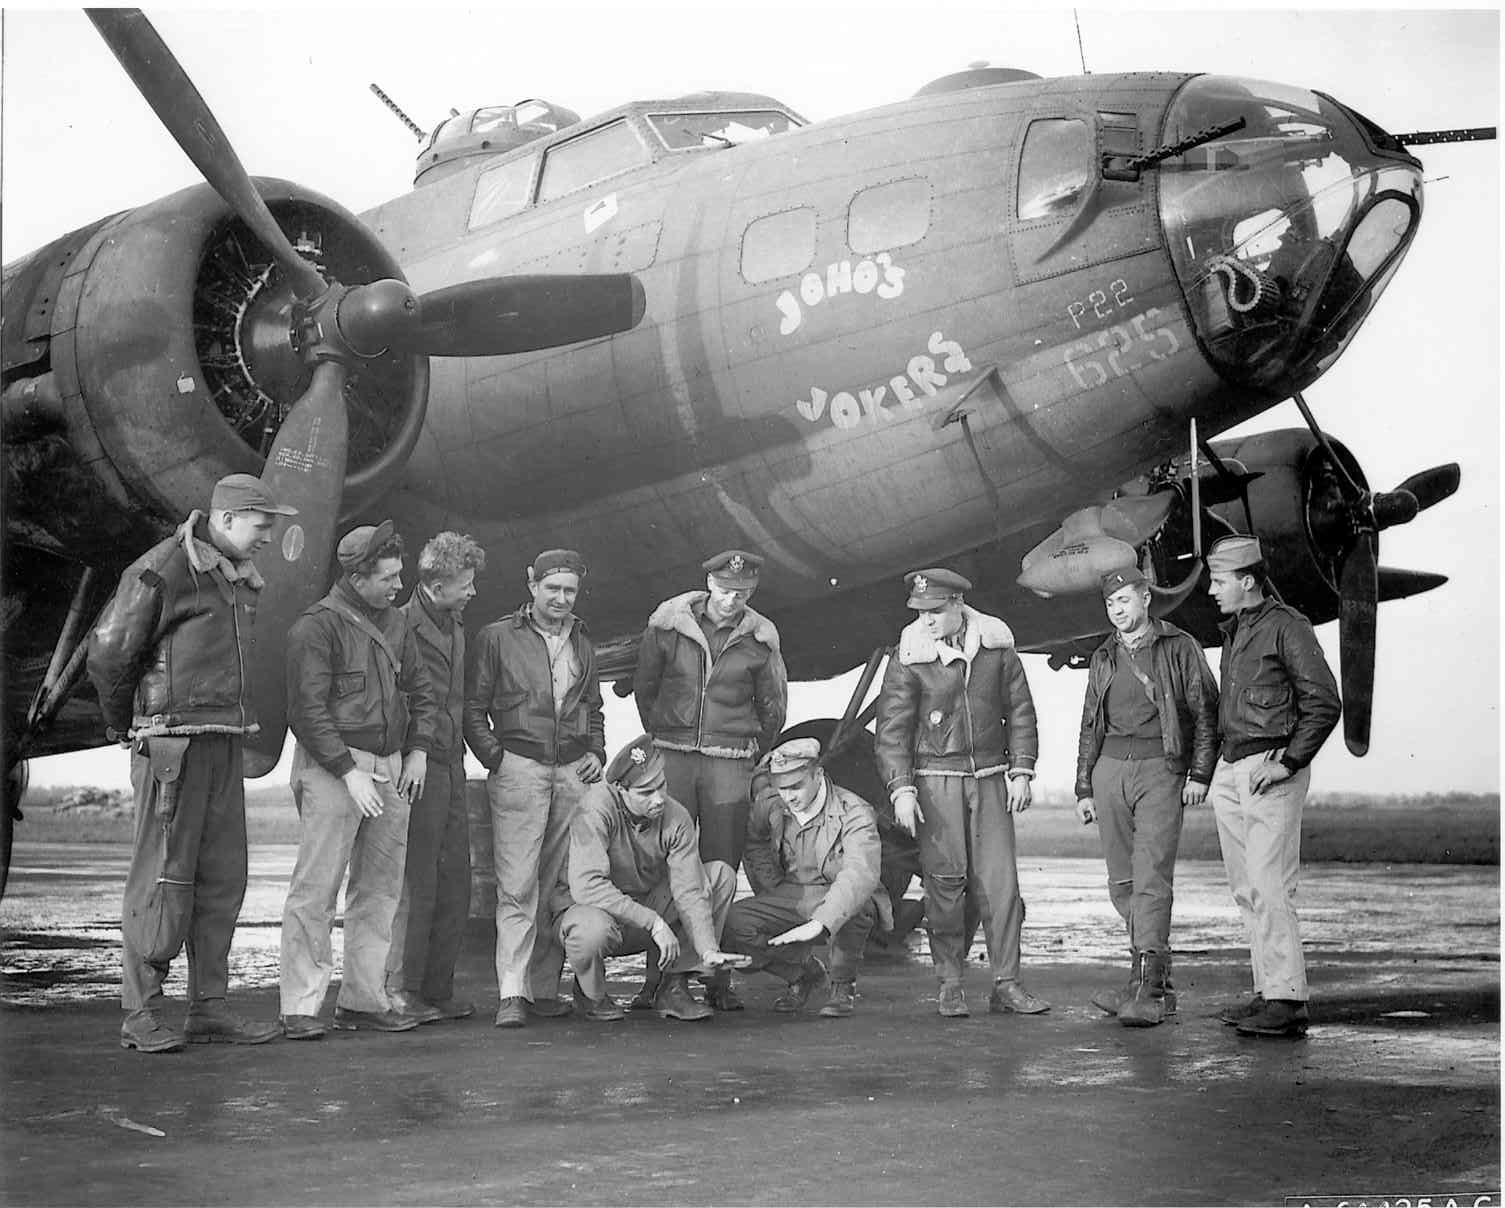 B-17 #42-30625 / Joho's Jokers